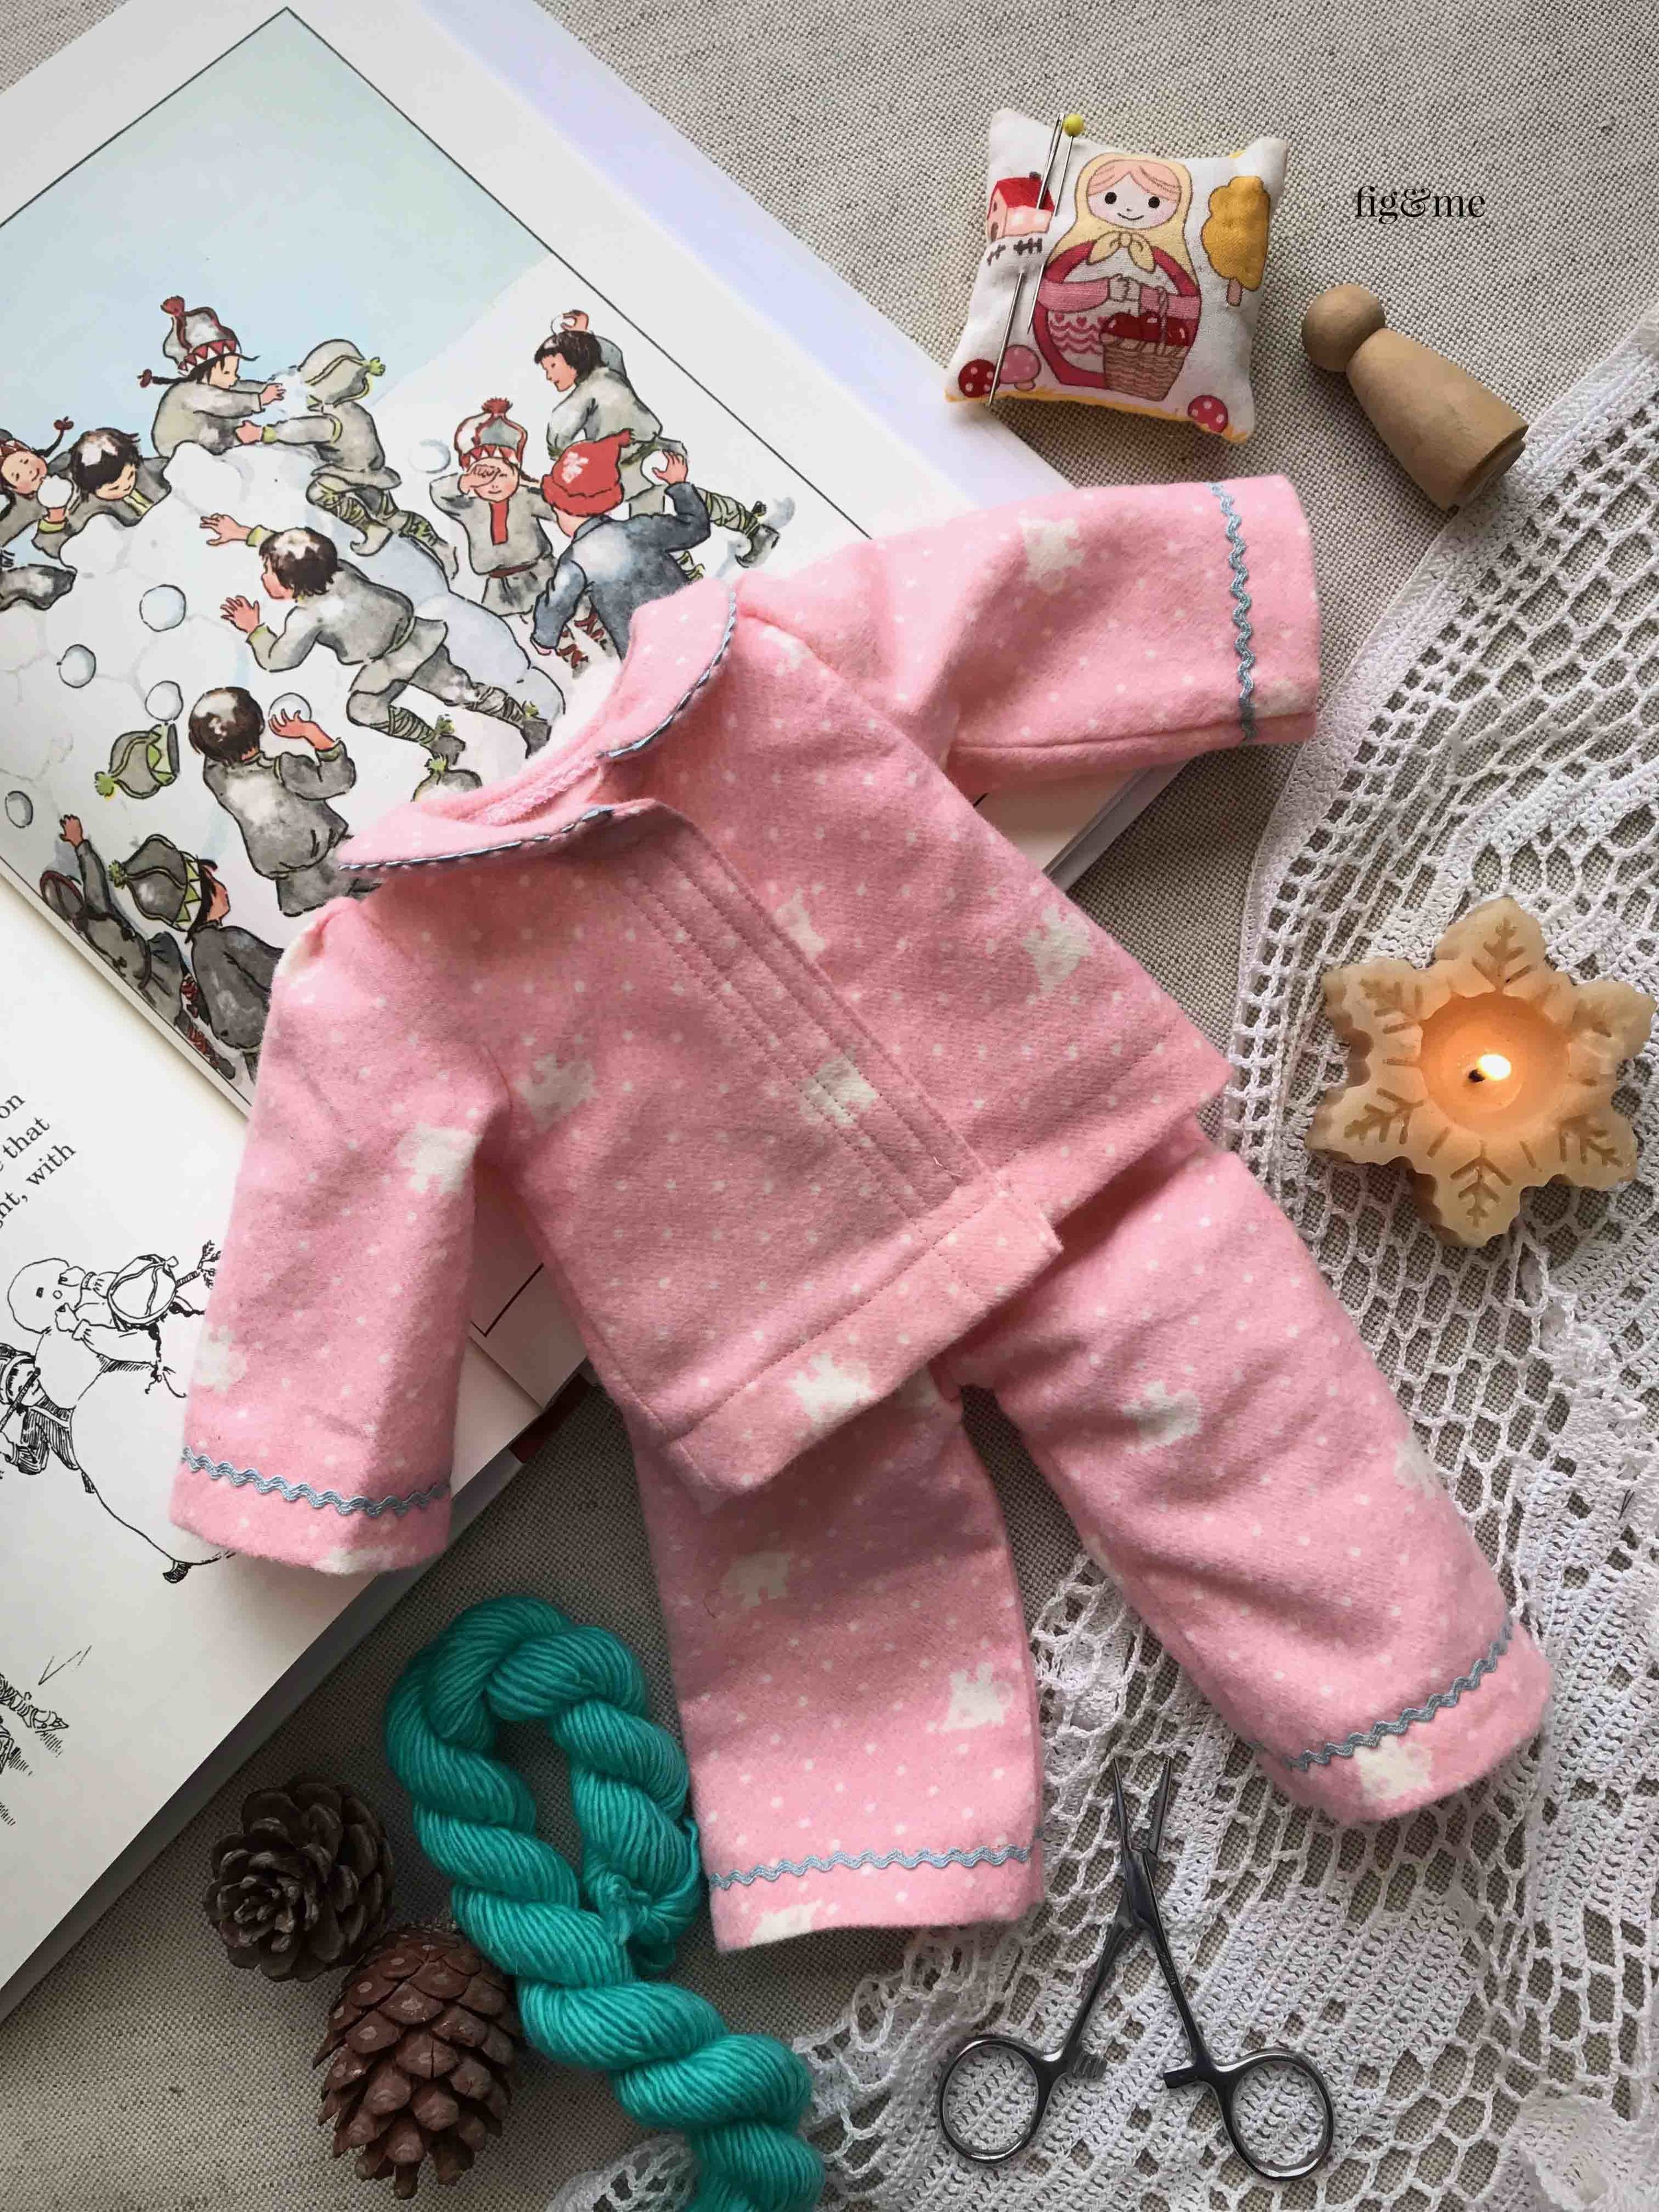 A lovely set of cotton flannel pyjamas for your waldorf or natural fiber art doll. Pattern available via Fig and Me. #dollclothing #sewingfordolls #dollmaking